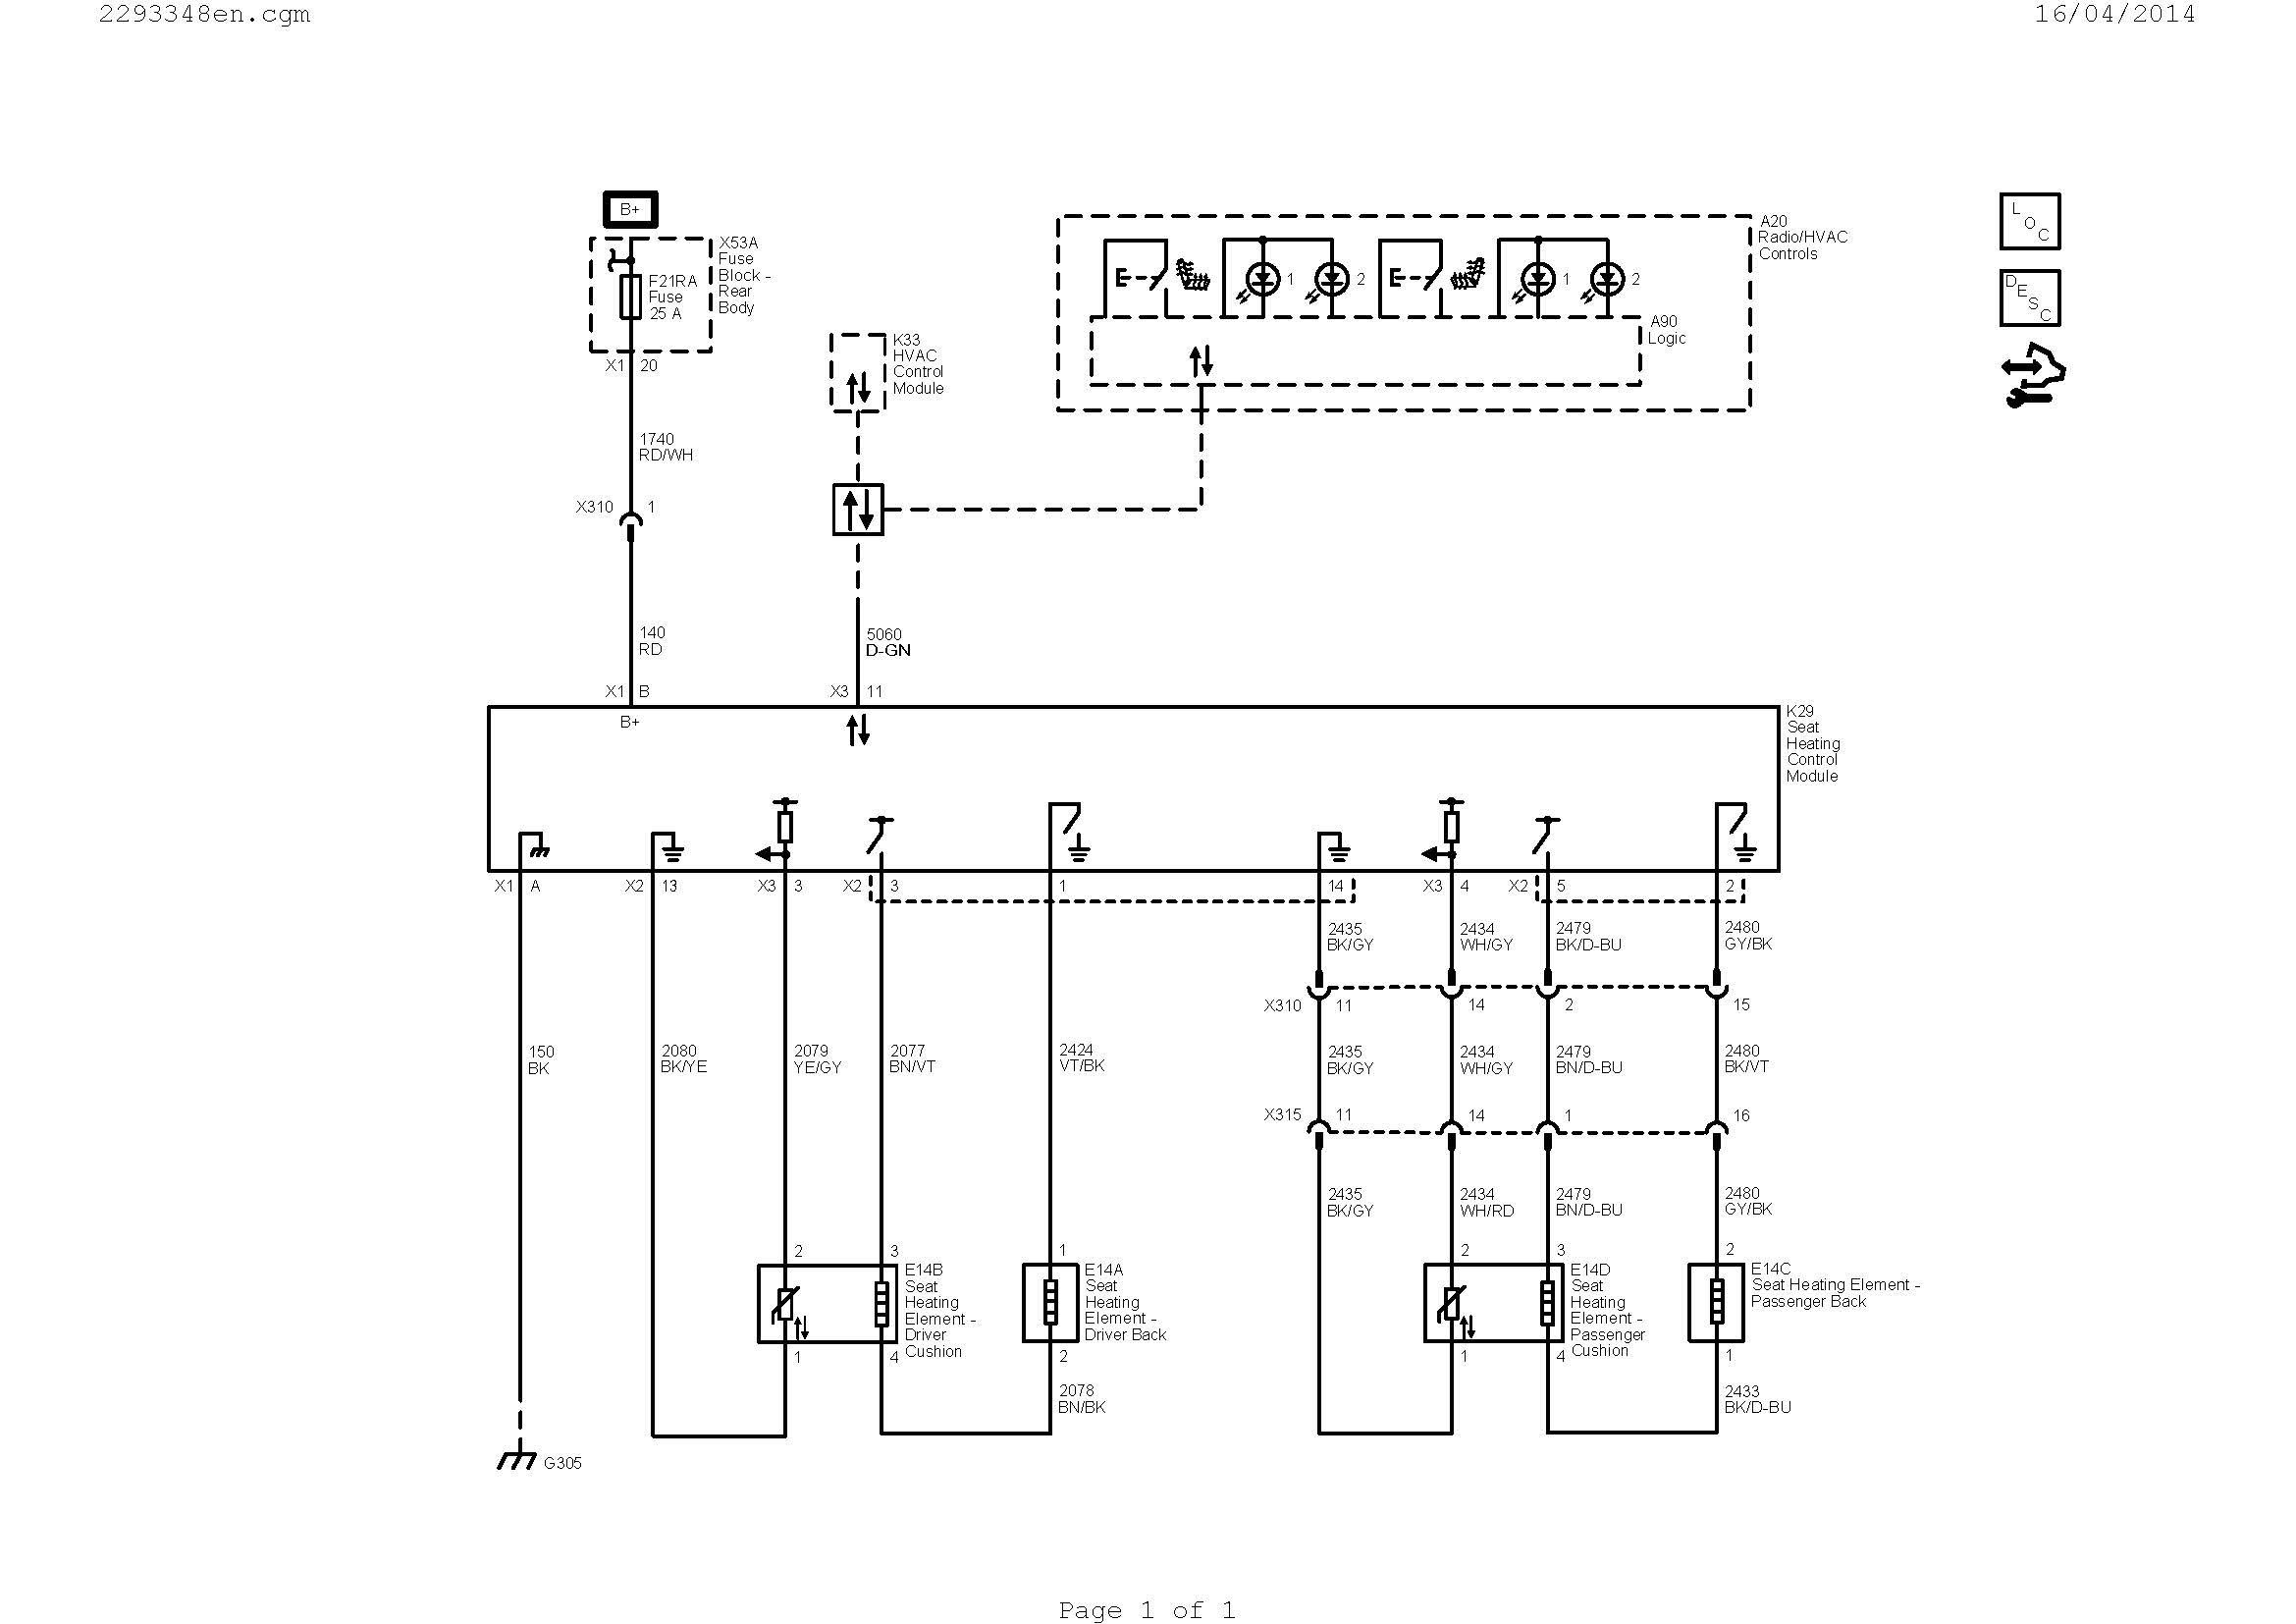 load center wiring diagram Download-Wiring Diagram Codes Best Hvac Diagram Best Hvac Diagram 0d – Wire Diagram 10-f